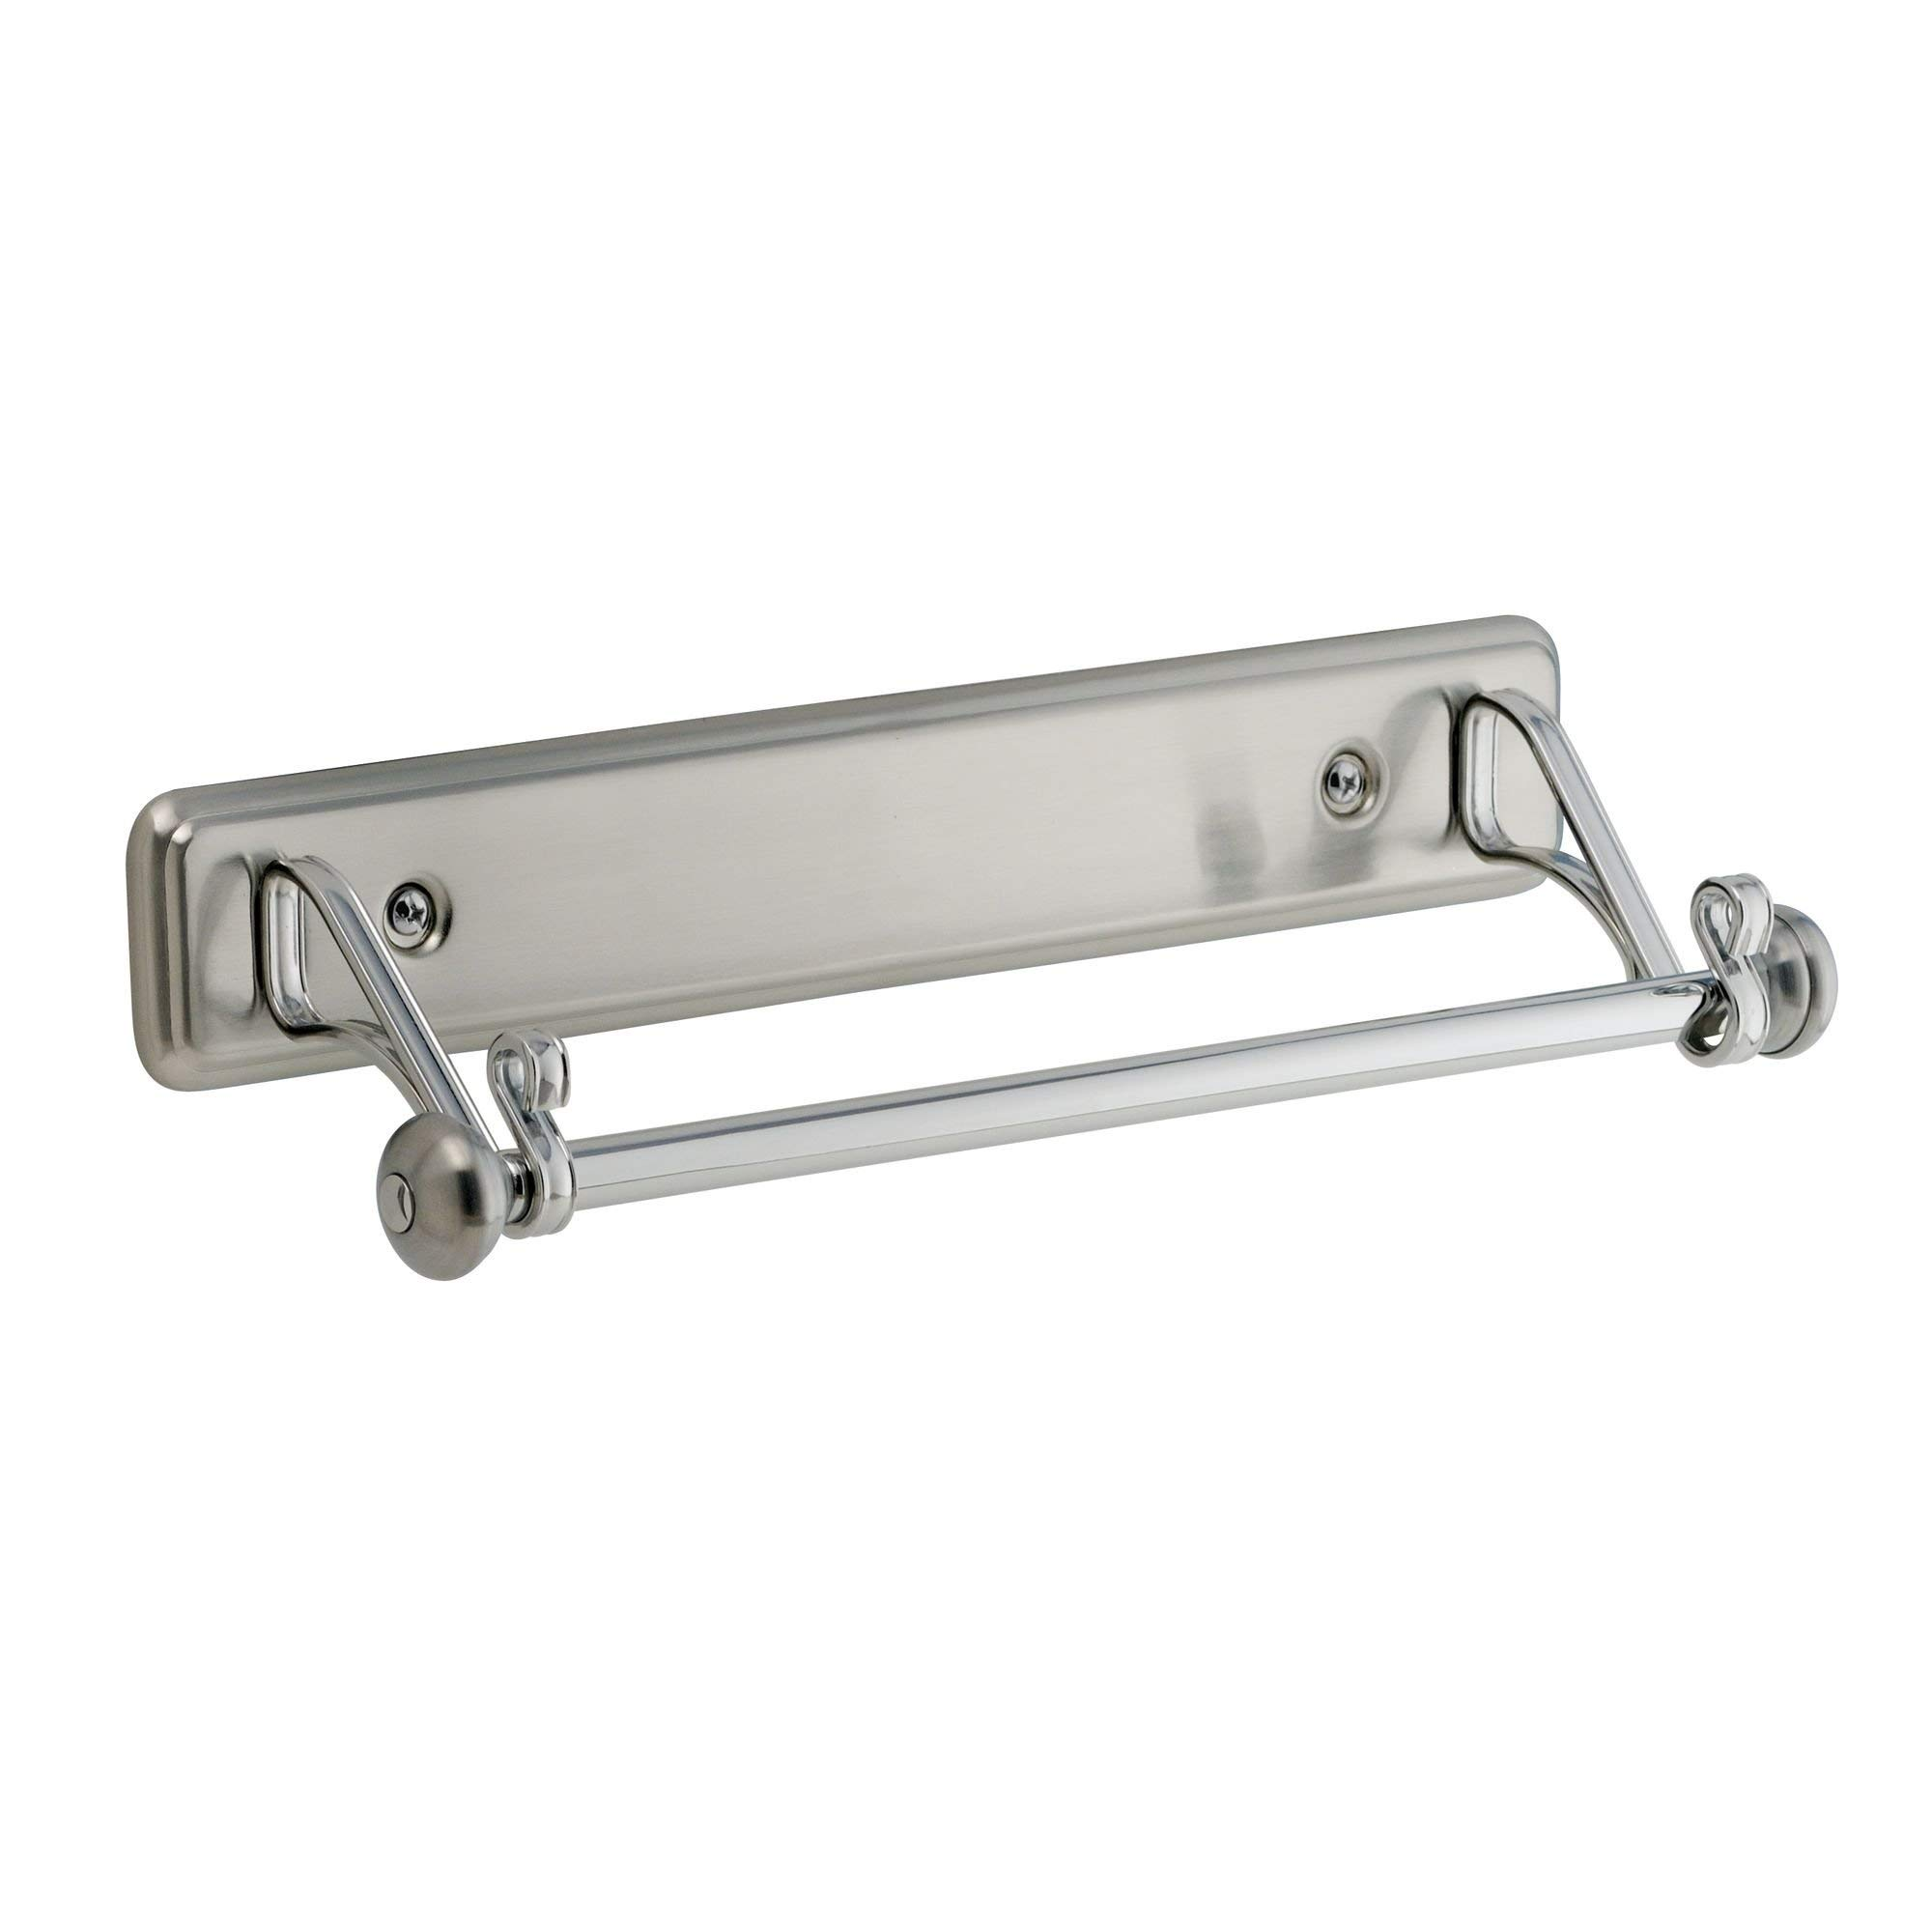 iDesign York Wall Mounted Metal Paper Towel Holder, Roll Organizer for Kitchen, Bathroom, Craft Room, 2'' x 15.3'' x 5.2'', Chrome and Stainless Steel Finish by iDesign